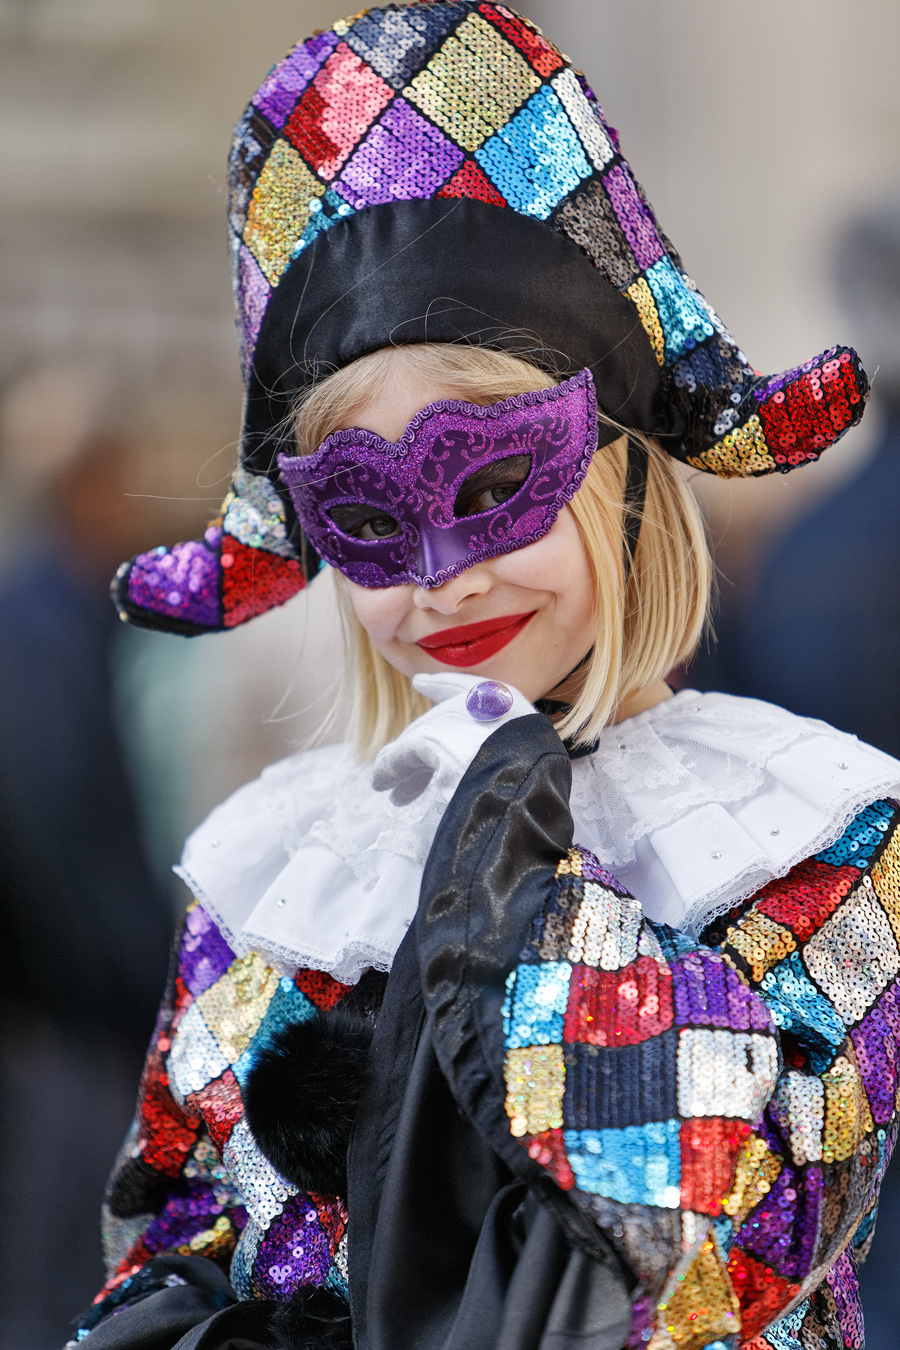 Carnaval vénitien à Longwy - le 02 avril 2017 - photos _mg_5197-51fa981